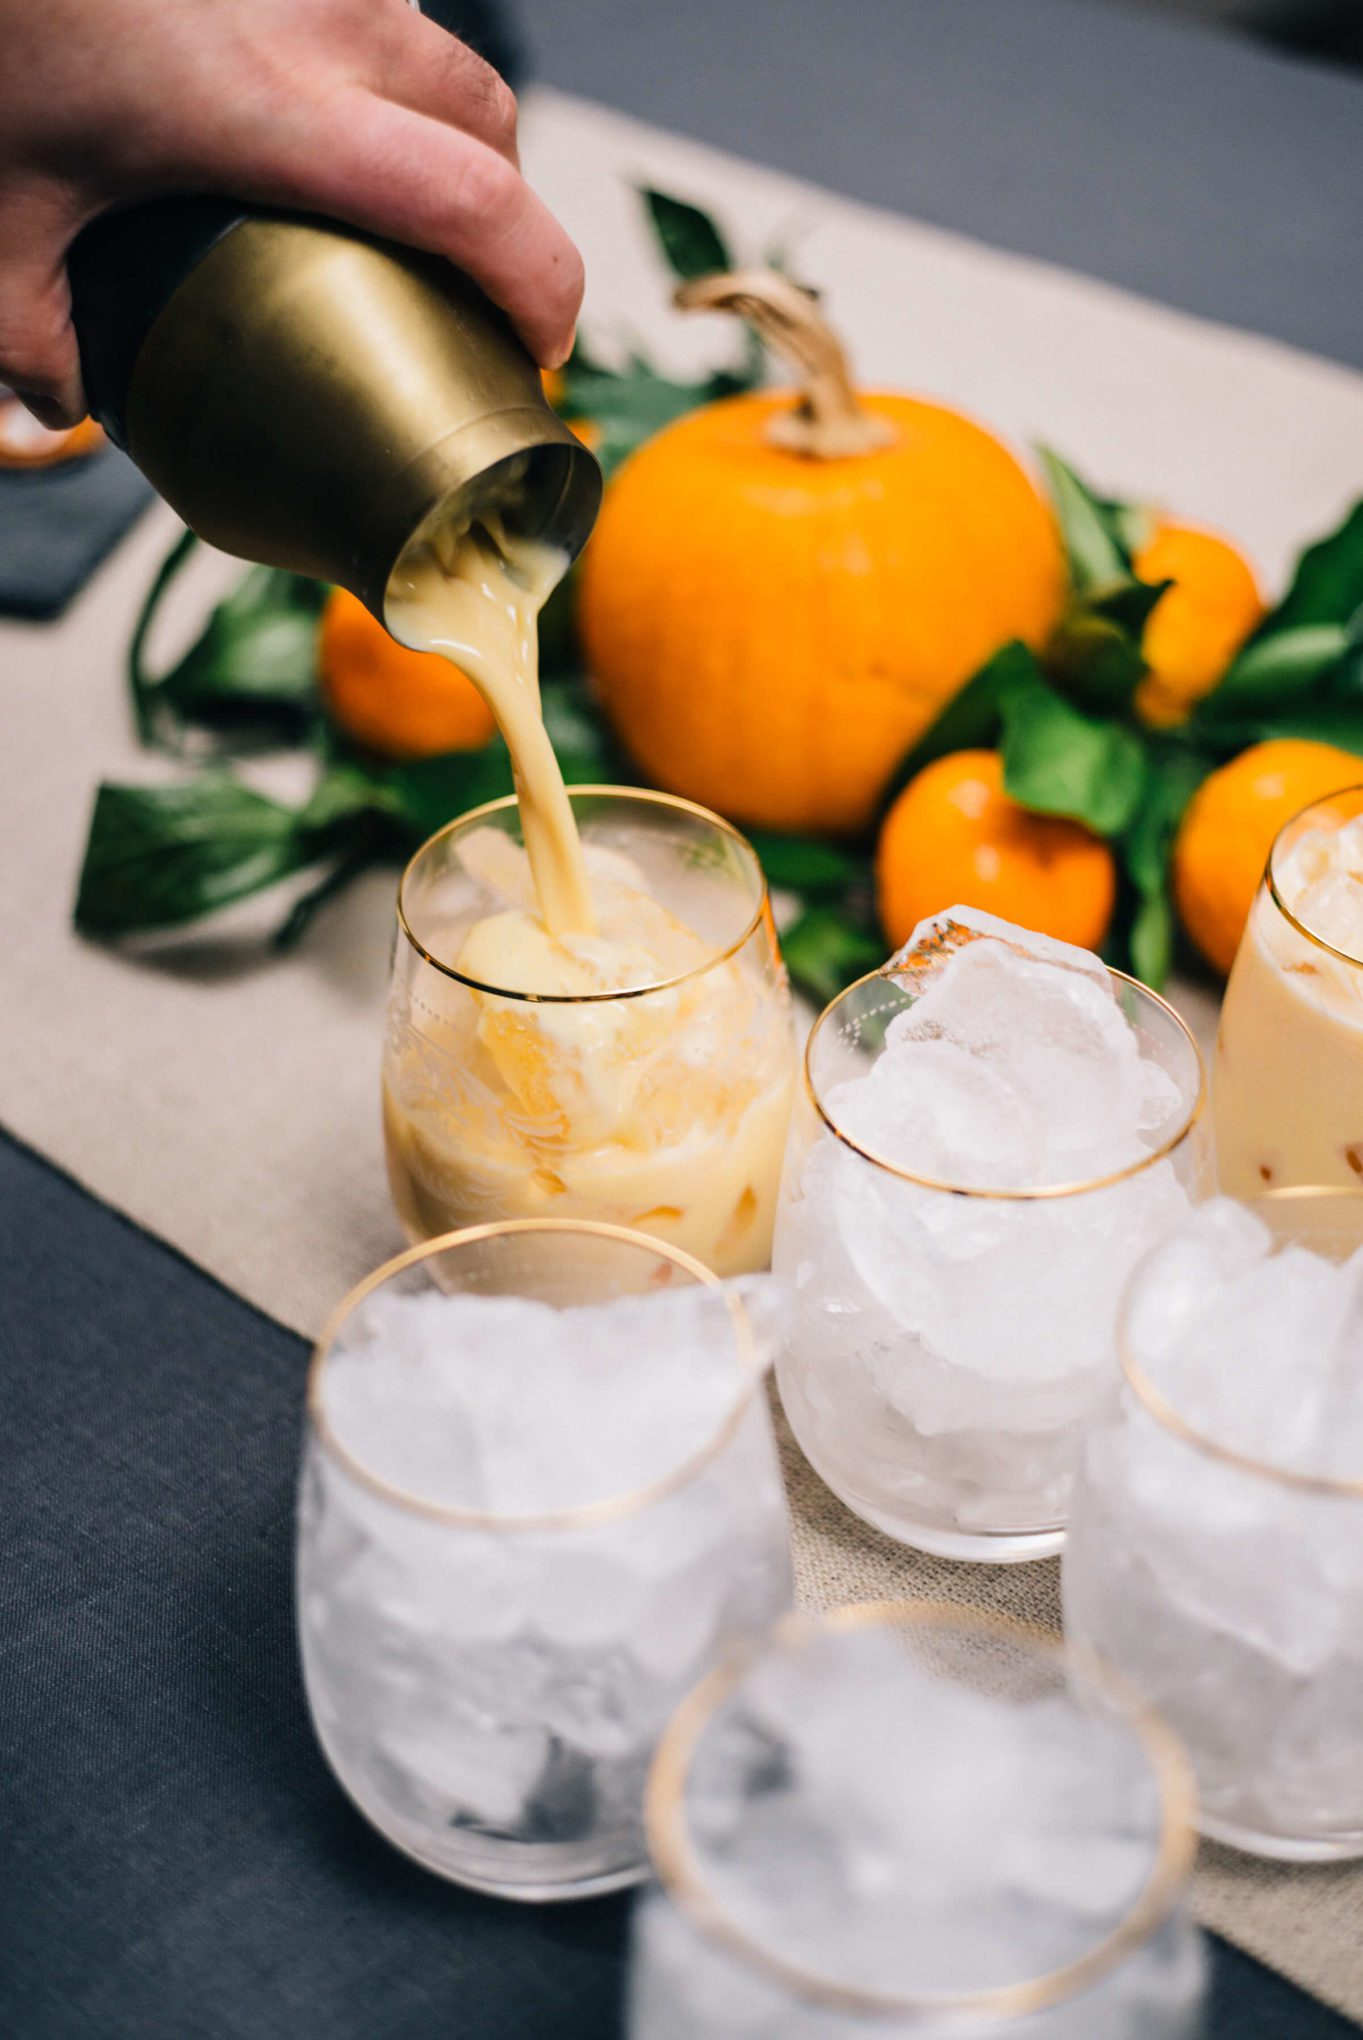 Pumpkin Cocktails are simple to make for your Thanksgiving cocktails or Haloween cocktails, perfect for a cocktail party made with Hangar 1 Vodka by The Taste SF